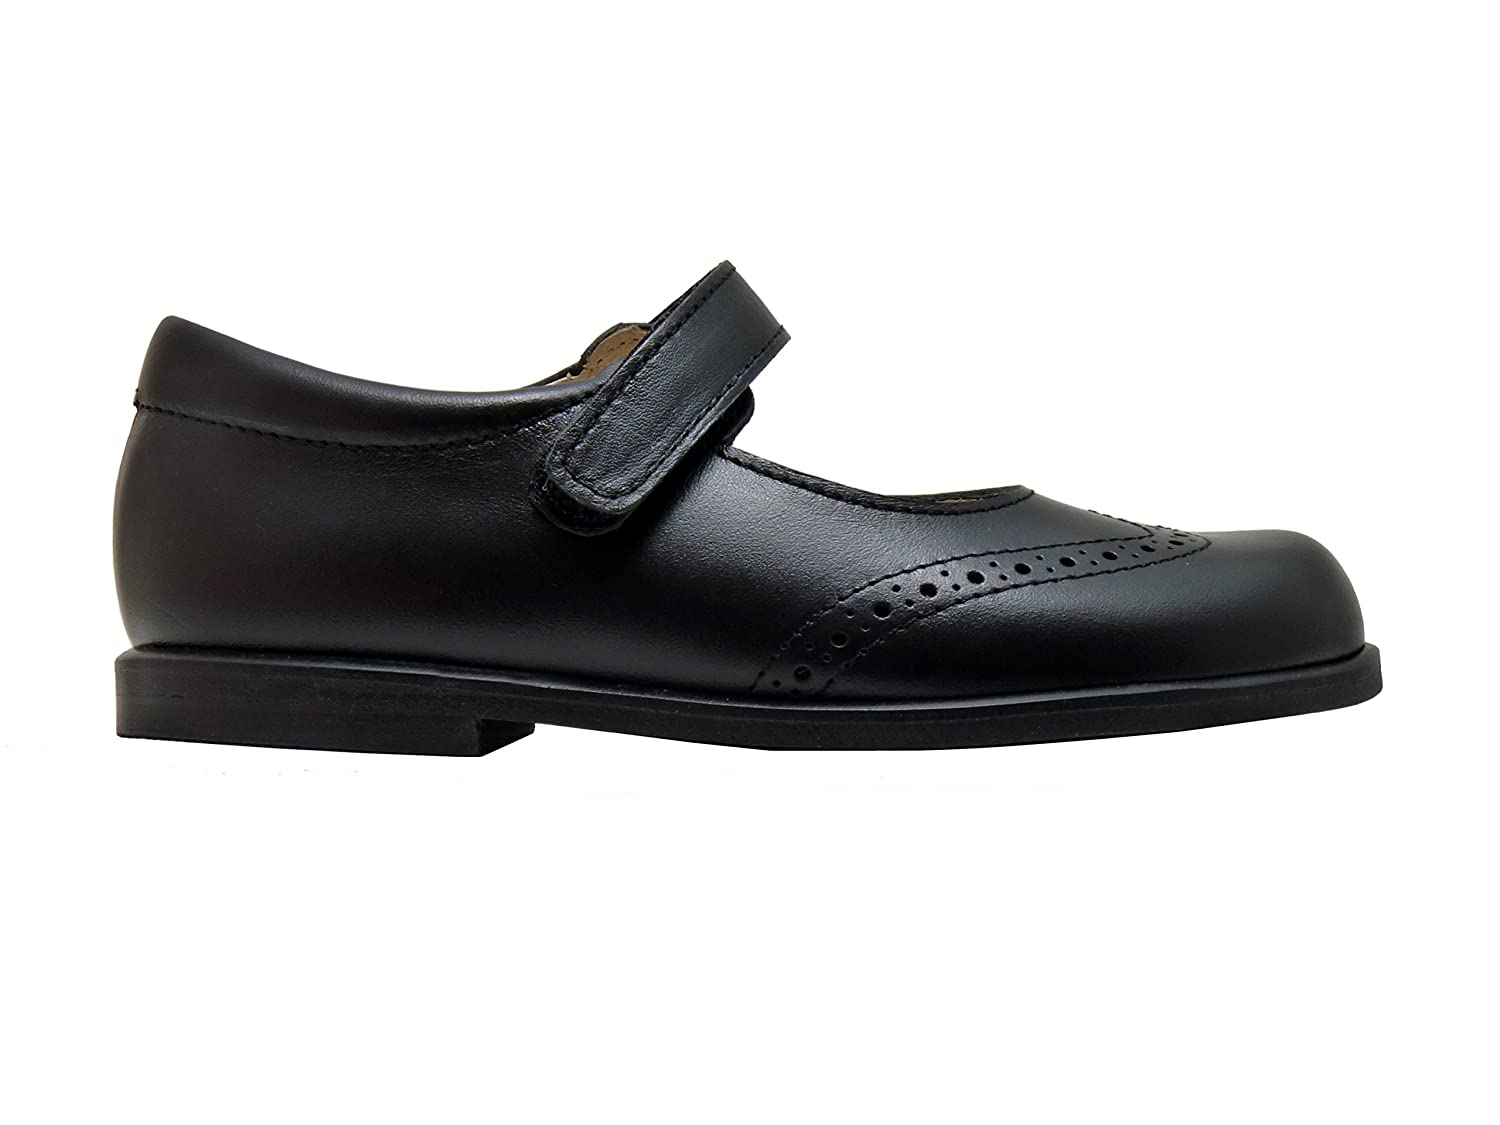 Di Angels Christy Black Leather School Shoes Mary Jane Size 6 Talla 23:  Amazon.co.uk: Shoes & Bags